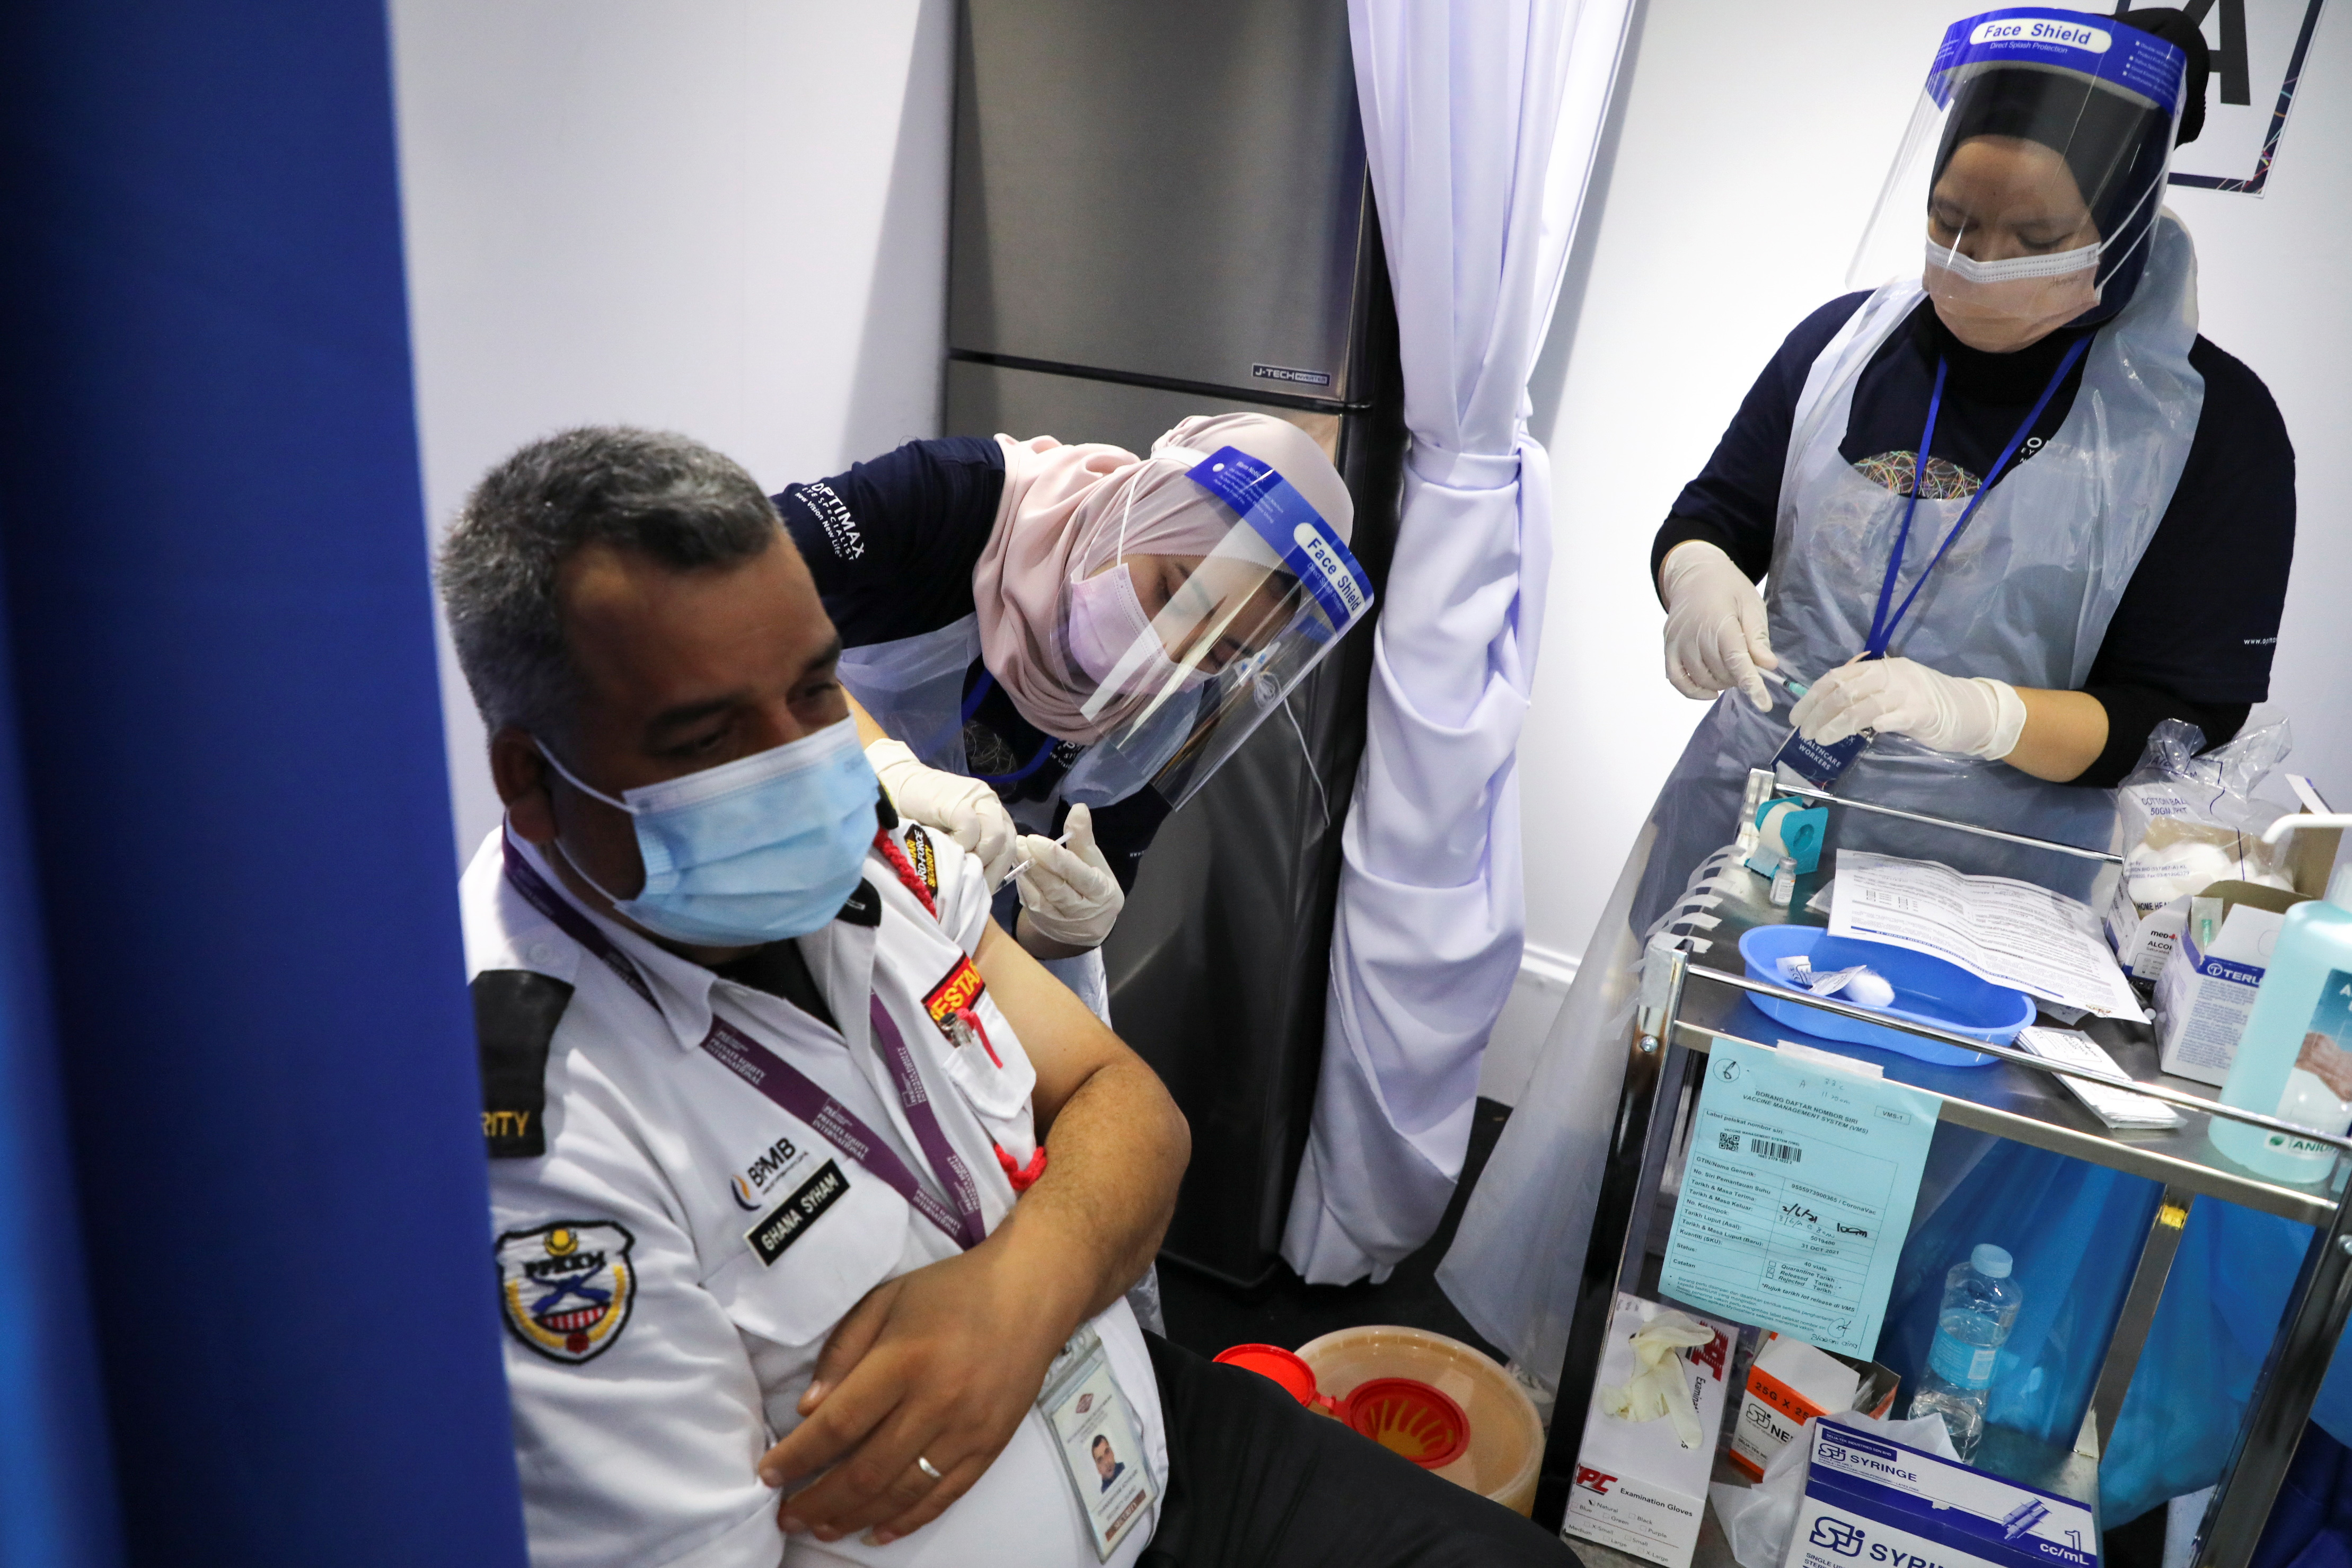 A foreign worker receives a dose of the Sinovac vaccine against the coronavirus disease (COVID-19), in a vaccination truck in Kuala Lumpur, Malaysia June 8, 2021. REUTERS/Lim Huey Teng